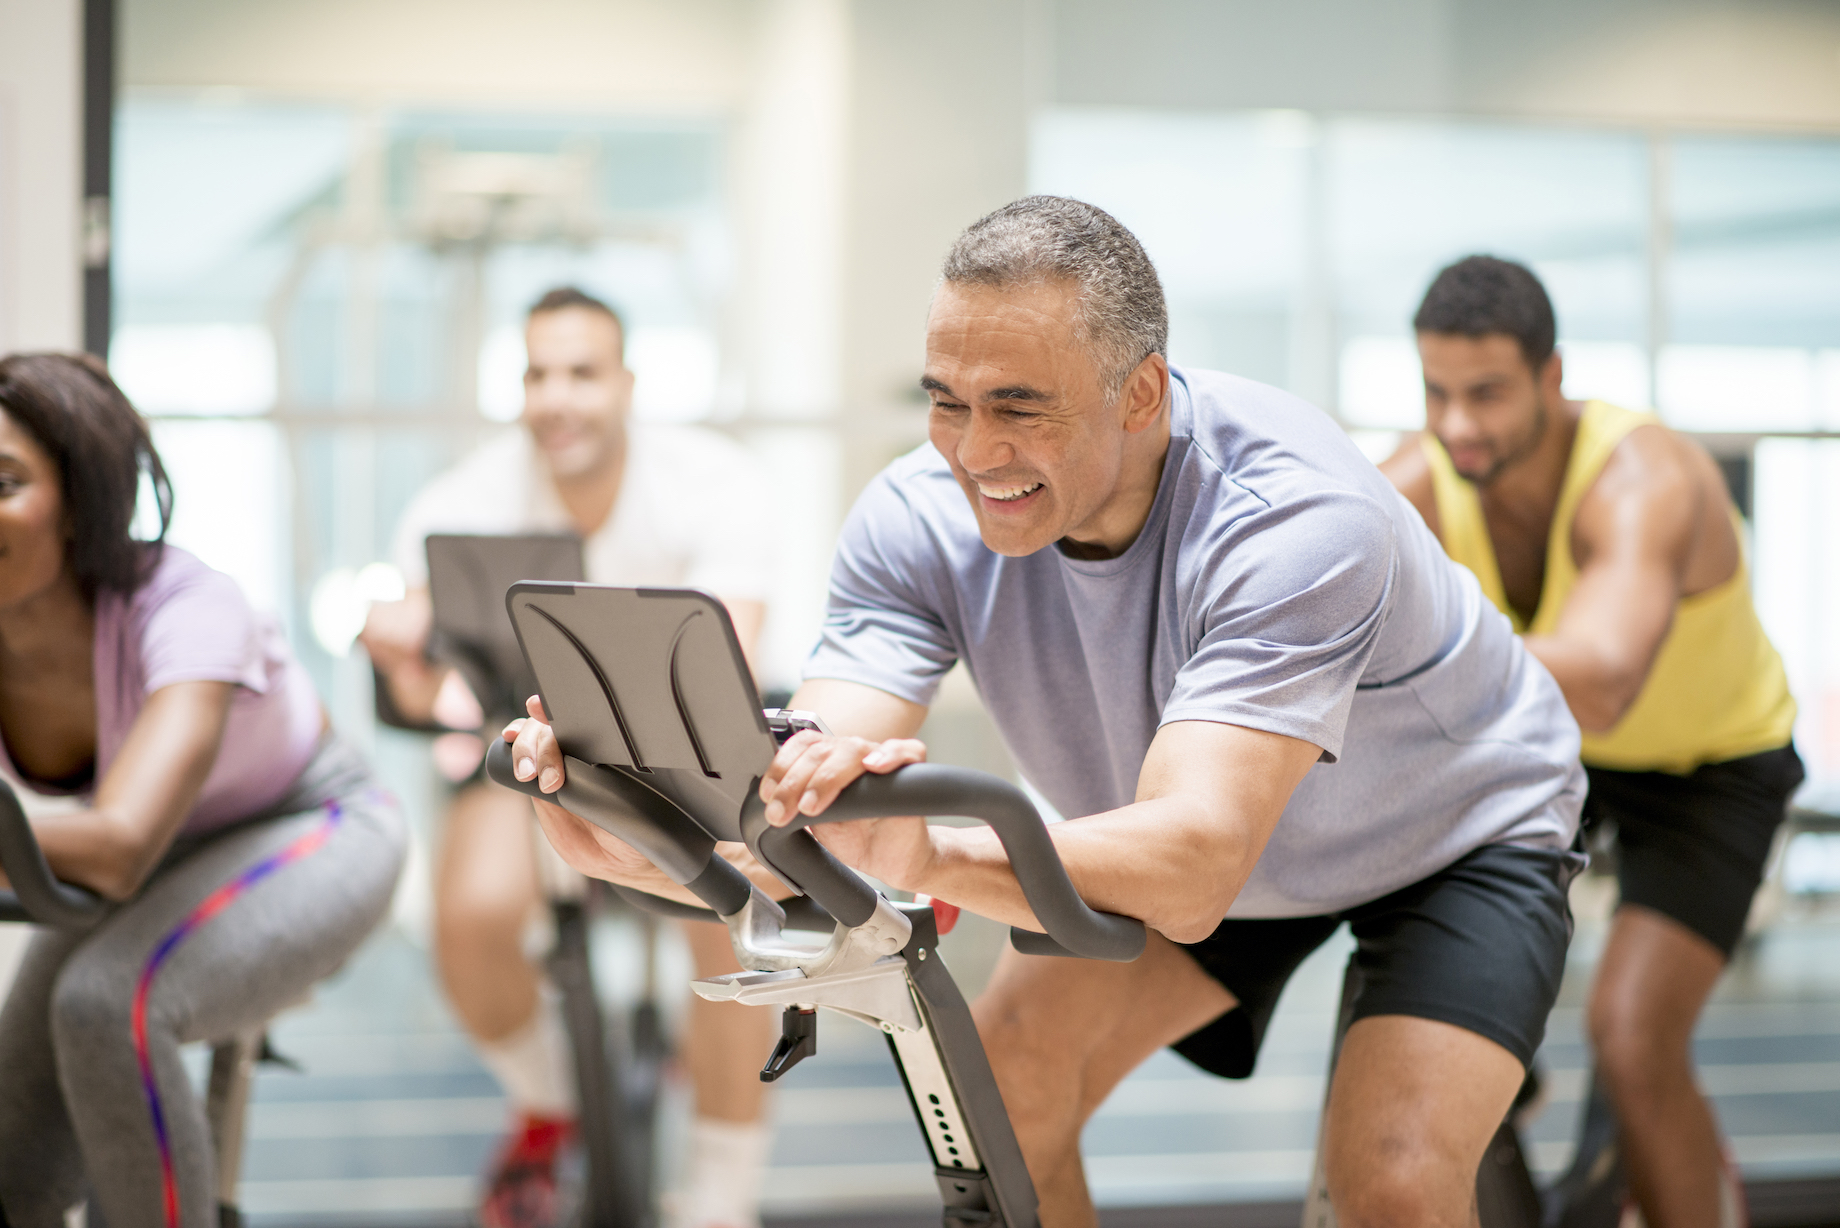 A multi-ethnic group of adults are taking a spin class together at the gym. They are working by cycling on stationary bikes.